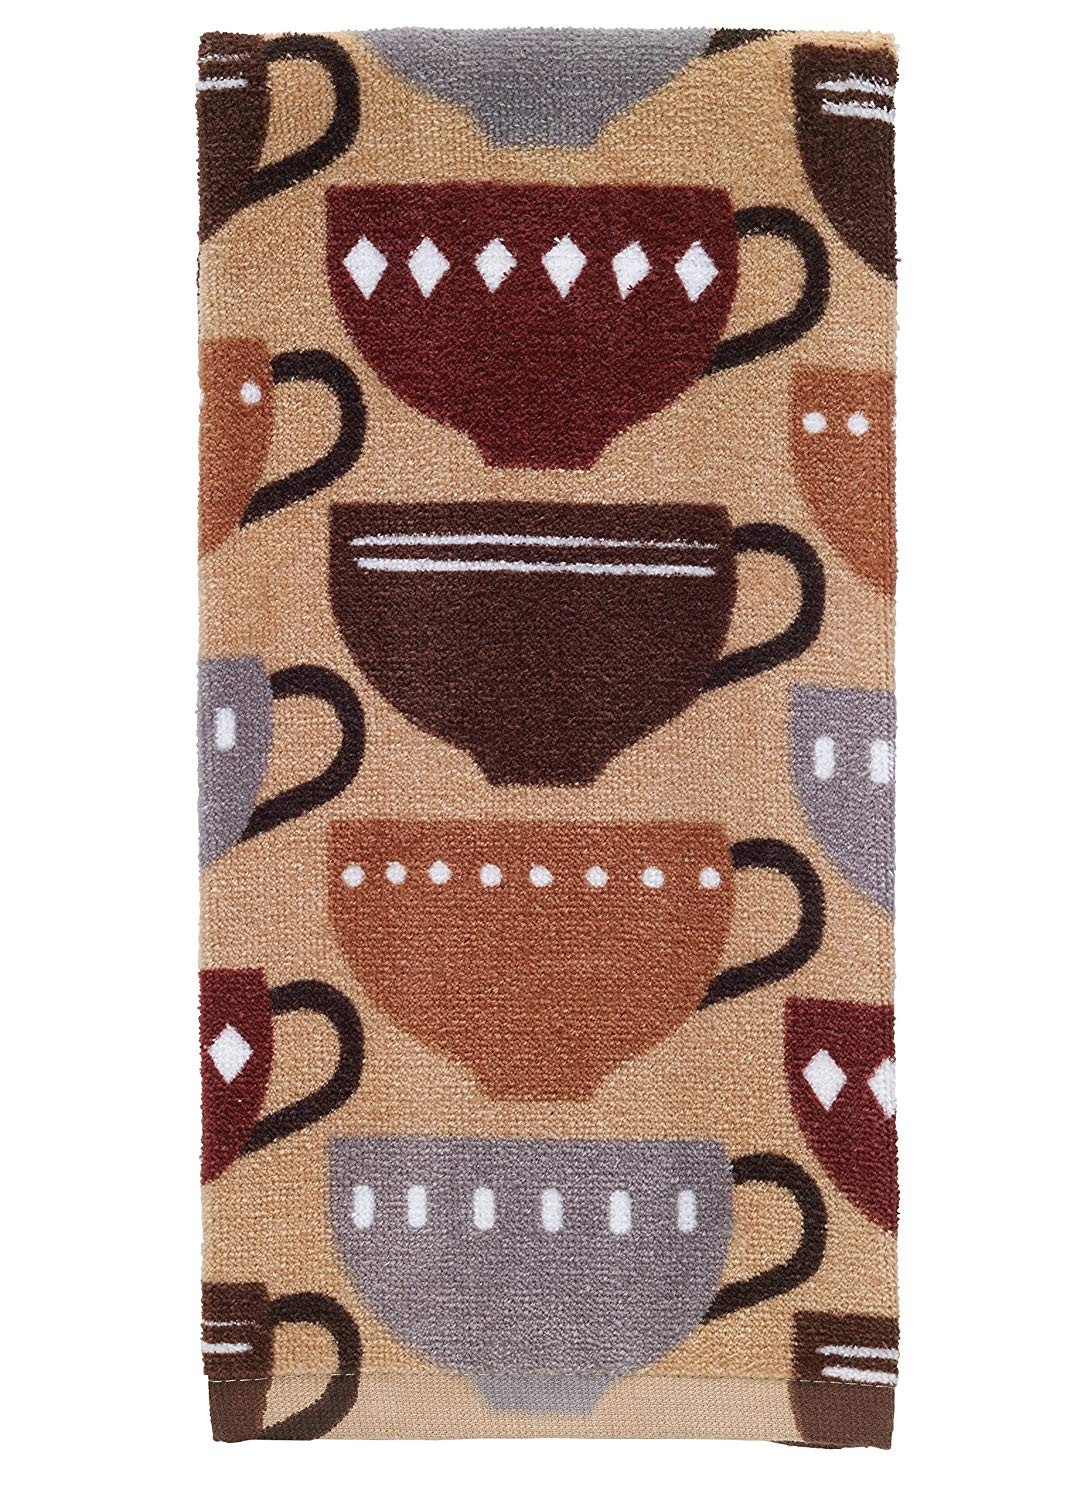 "T-Fal Textiles 100% Cotton Fiber Reactive Printed Kitchen Dish Towel, 19"" x 28"", Coffee Print"